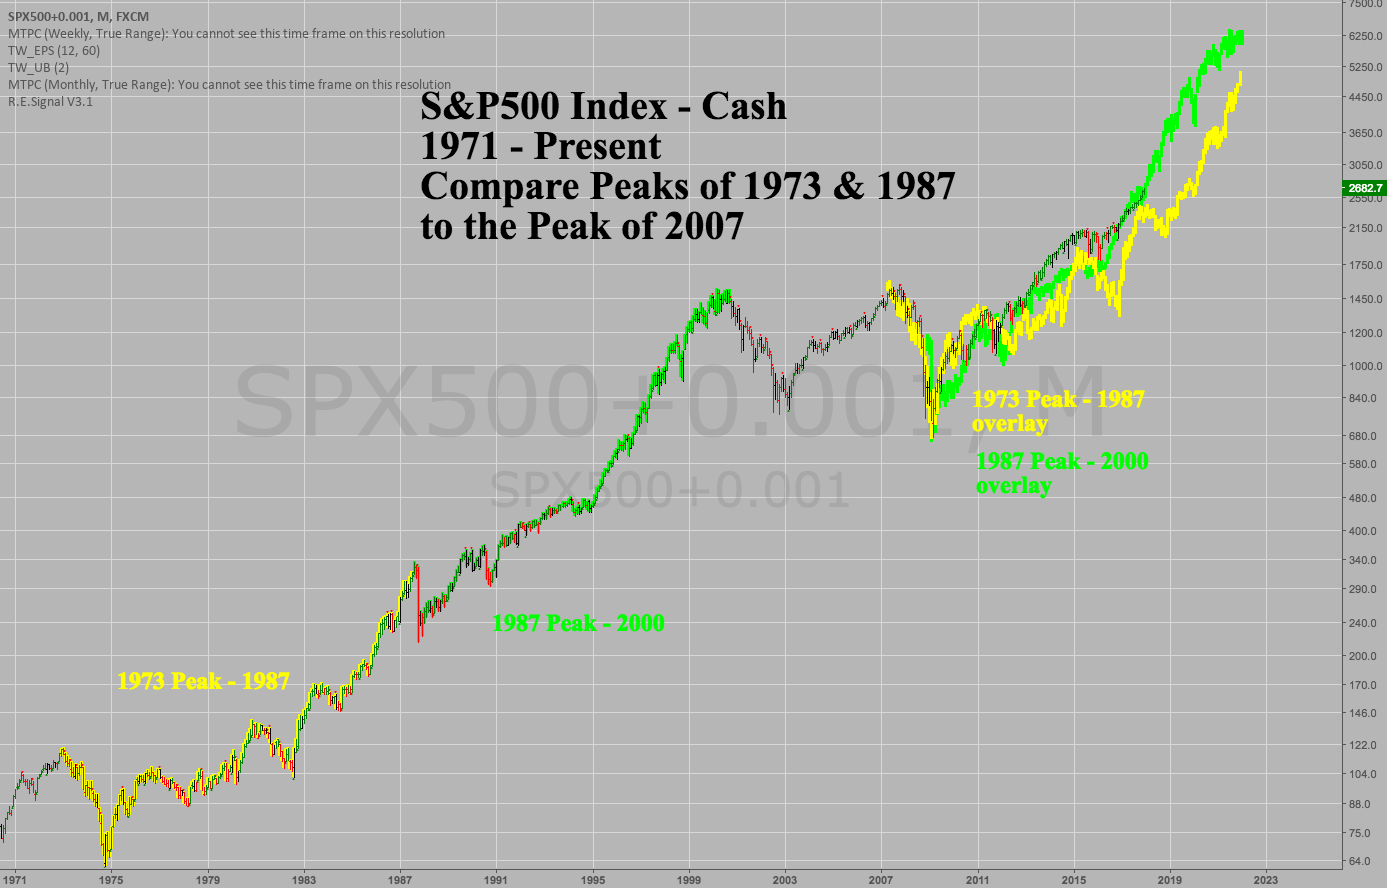 SPX500 Overlay '73 & '87 Peak to Trough to 2007 Peak